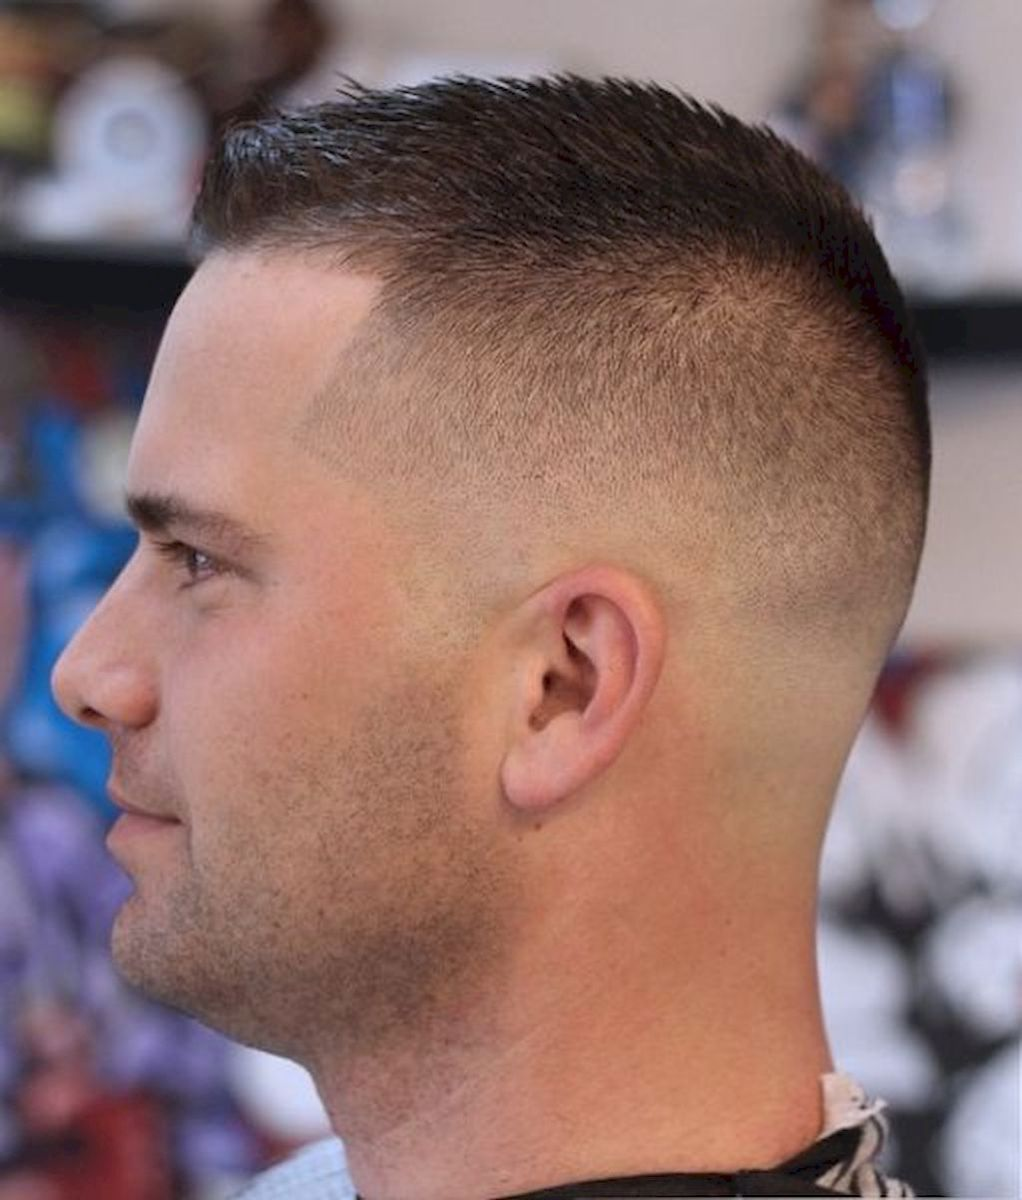 Best Mens Haircut Austin: Short Haircuts For Men Fade Buzz Cuts 6